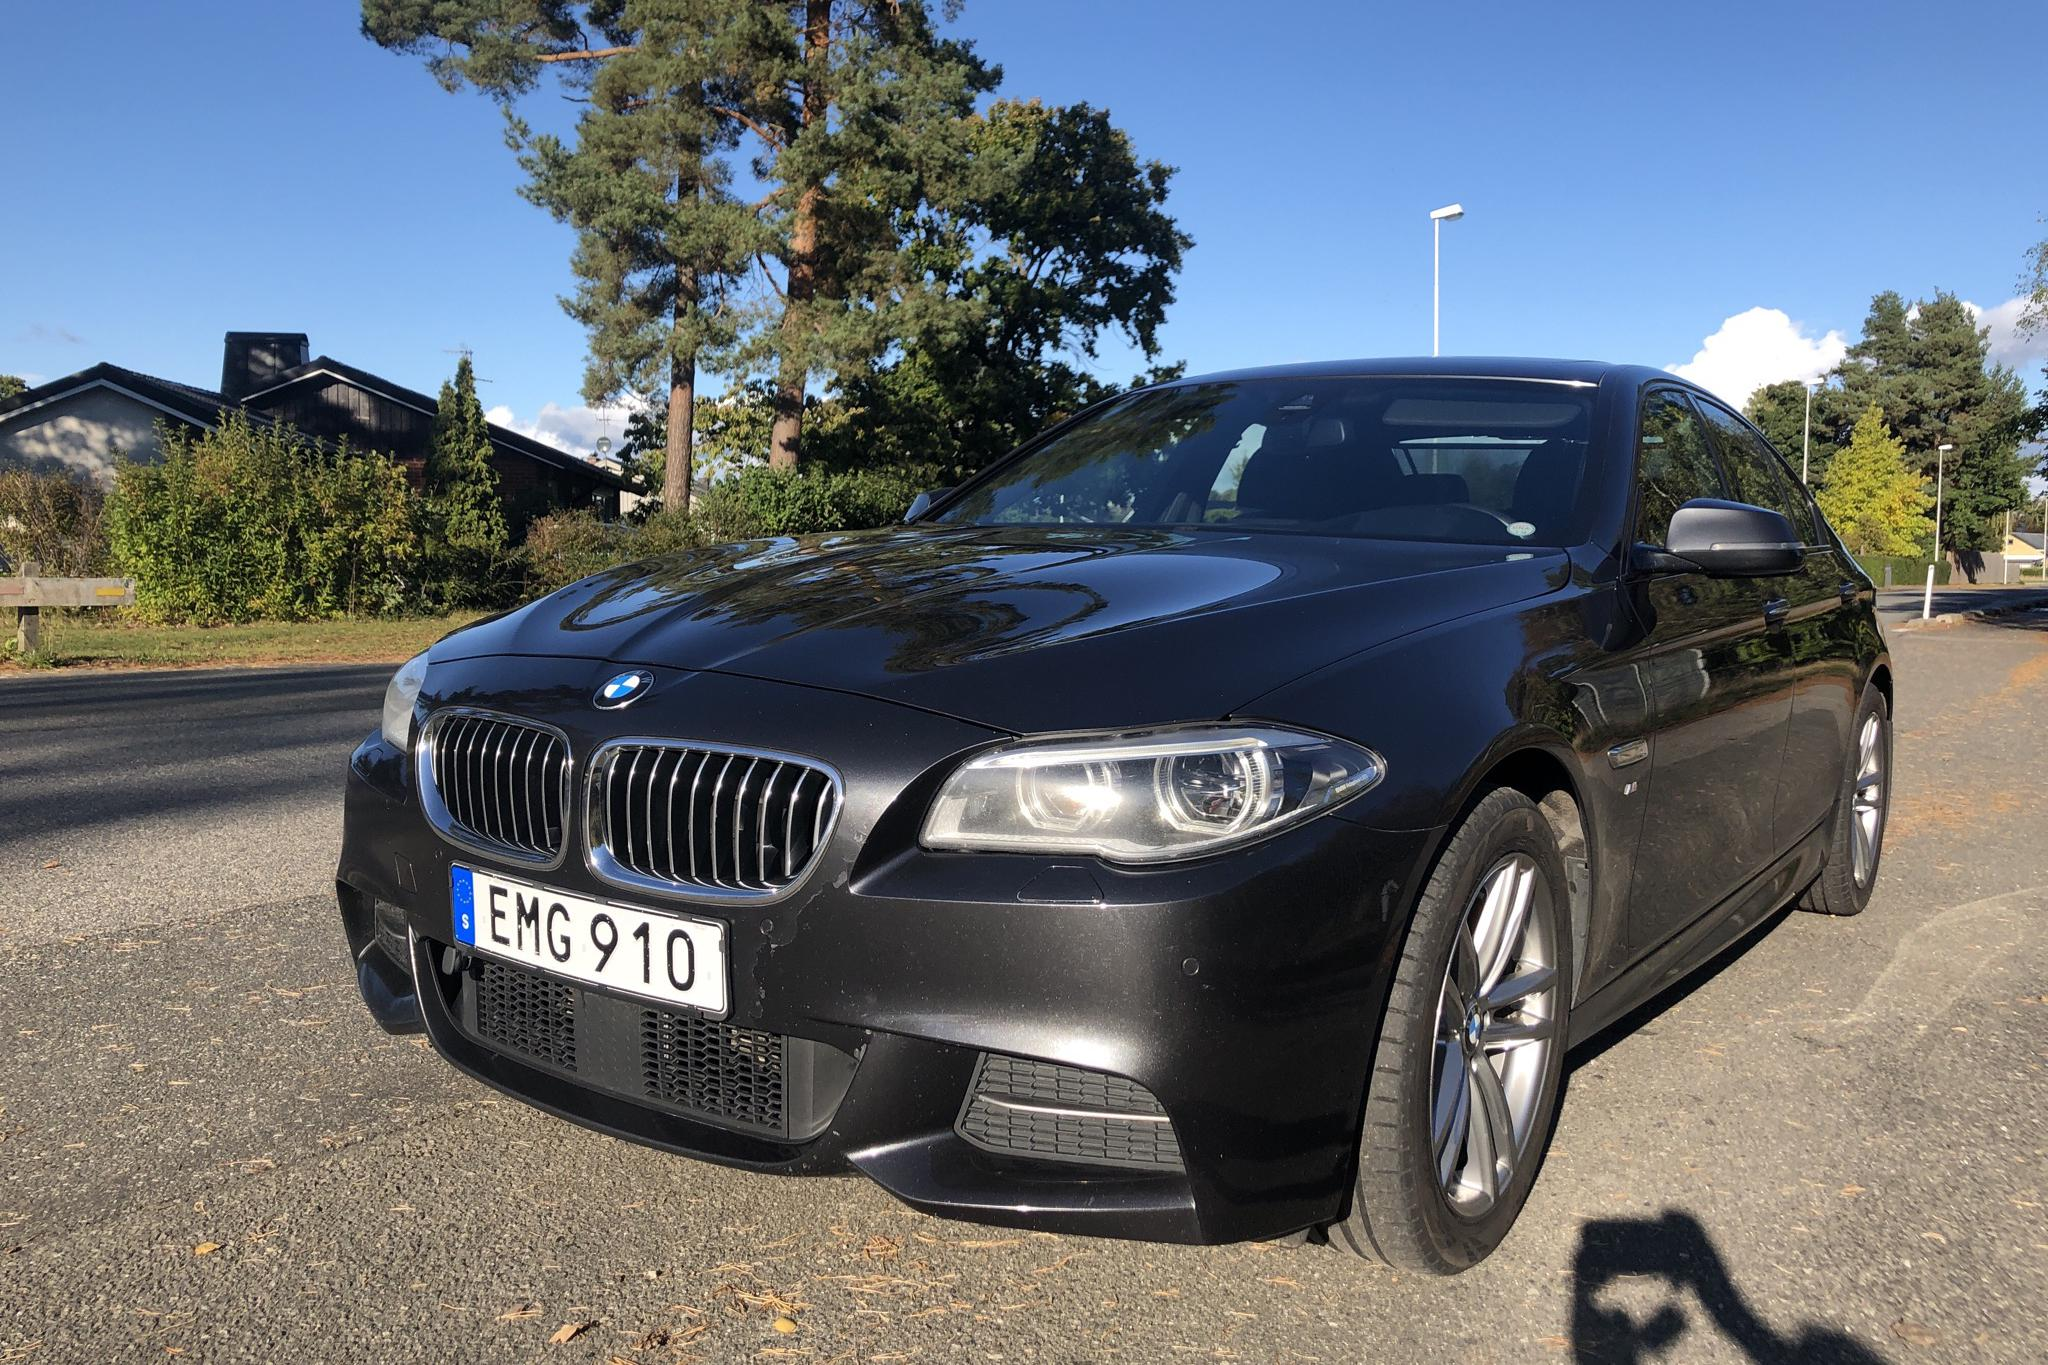 BMW 535d xDrive Sedan, F11 (313hk) - 125 240 km - Automatic - gray - 2015